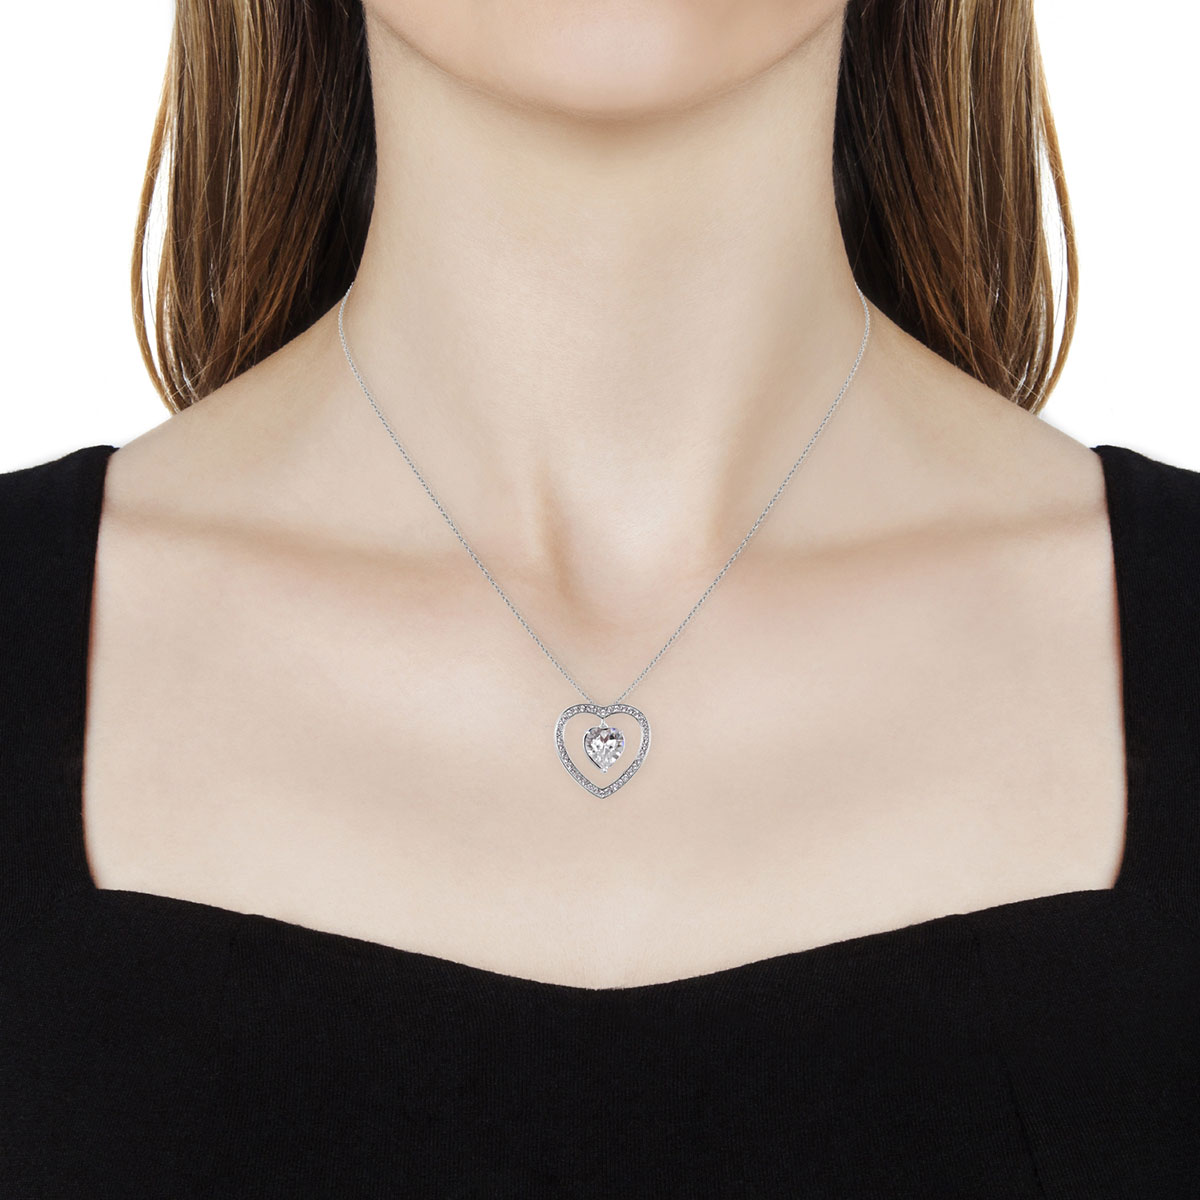 b0dfafdad73be From the Heart White SWAROVSKI Crystal Heart Pendant Necklace in 14K RG  Over Sterling Silver (18 in)